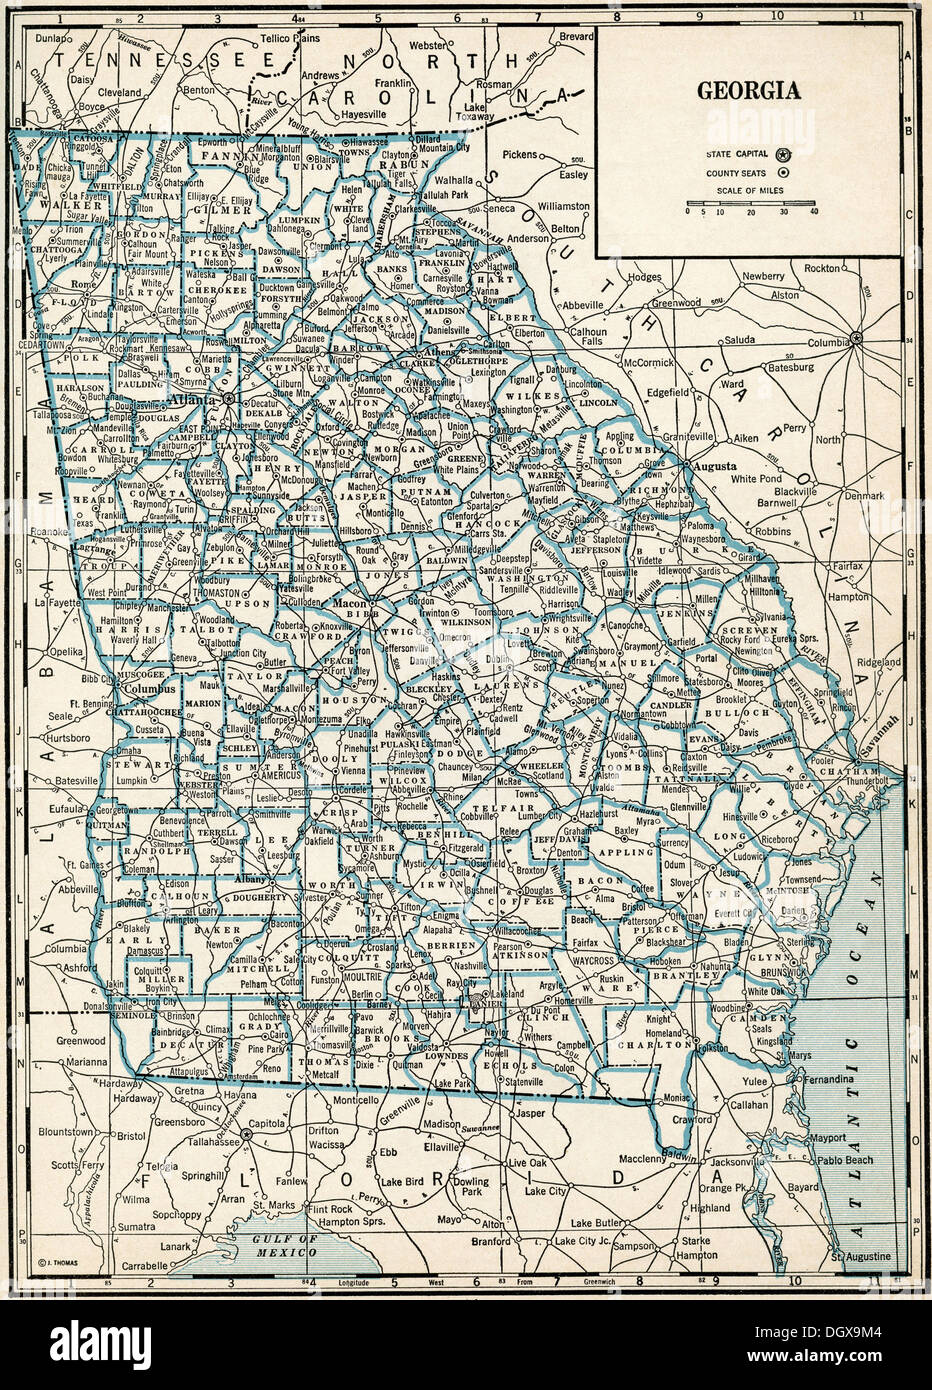 Map Of Old Georgia.Old Map Of Georgia State 1930 S Stock Photo 62043972 Alamy